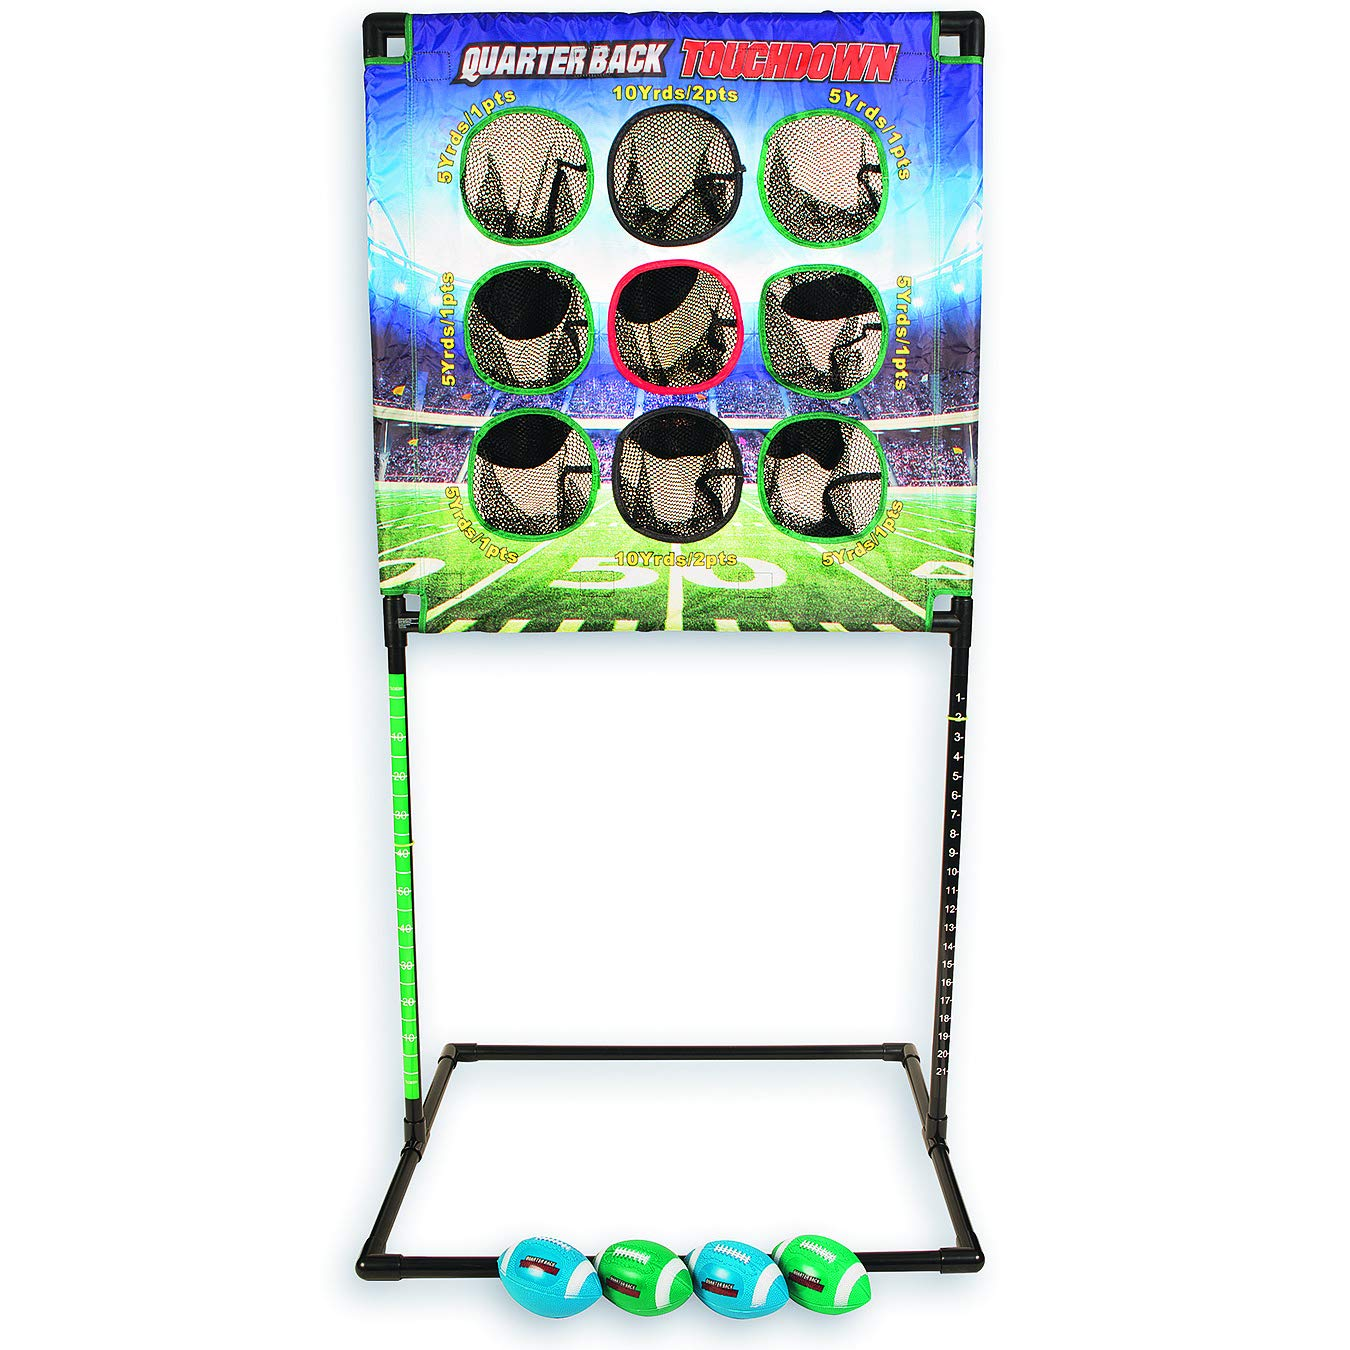 Tailgating and Parties Garage the Outdoor and Indoor Football Game for Everyone To Enjoy Portable Kid Agains QB01 Quarterback Touchdown Ideal for Playing Fun Games Easy To Set Up Camping Beach Back Yard